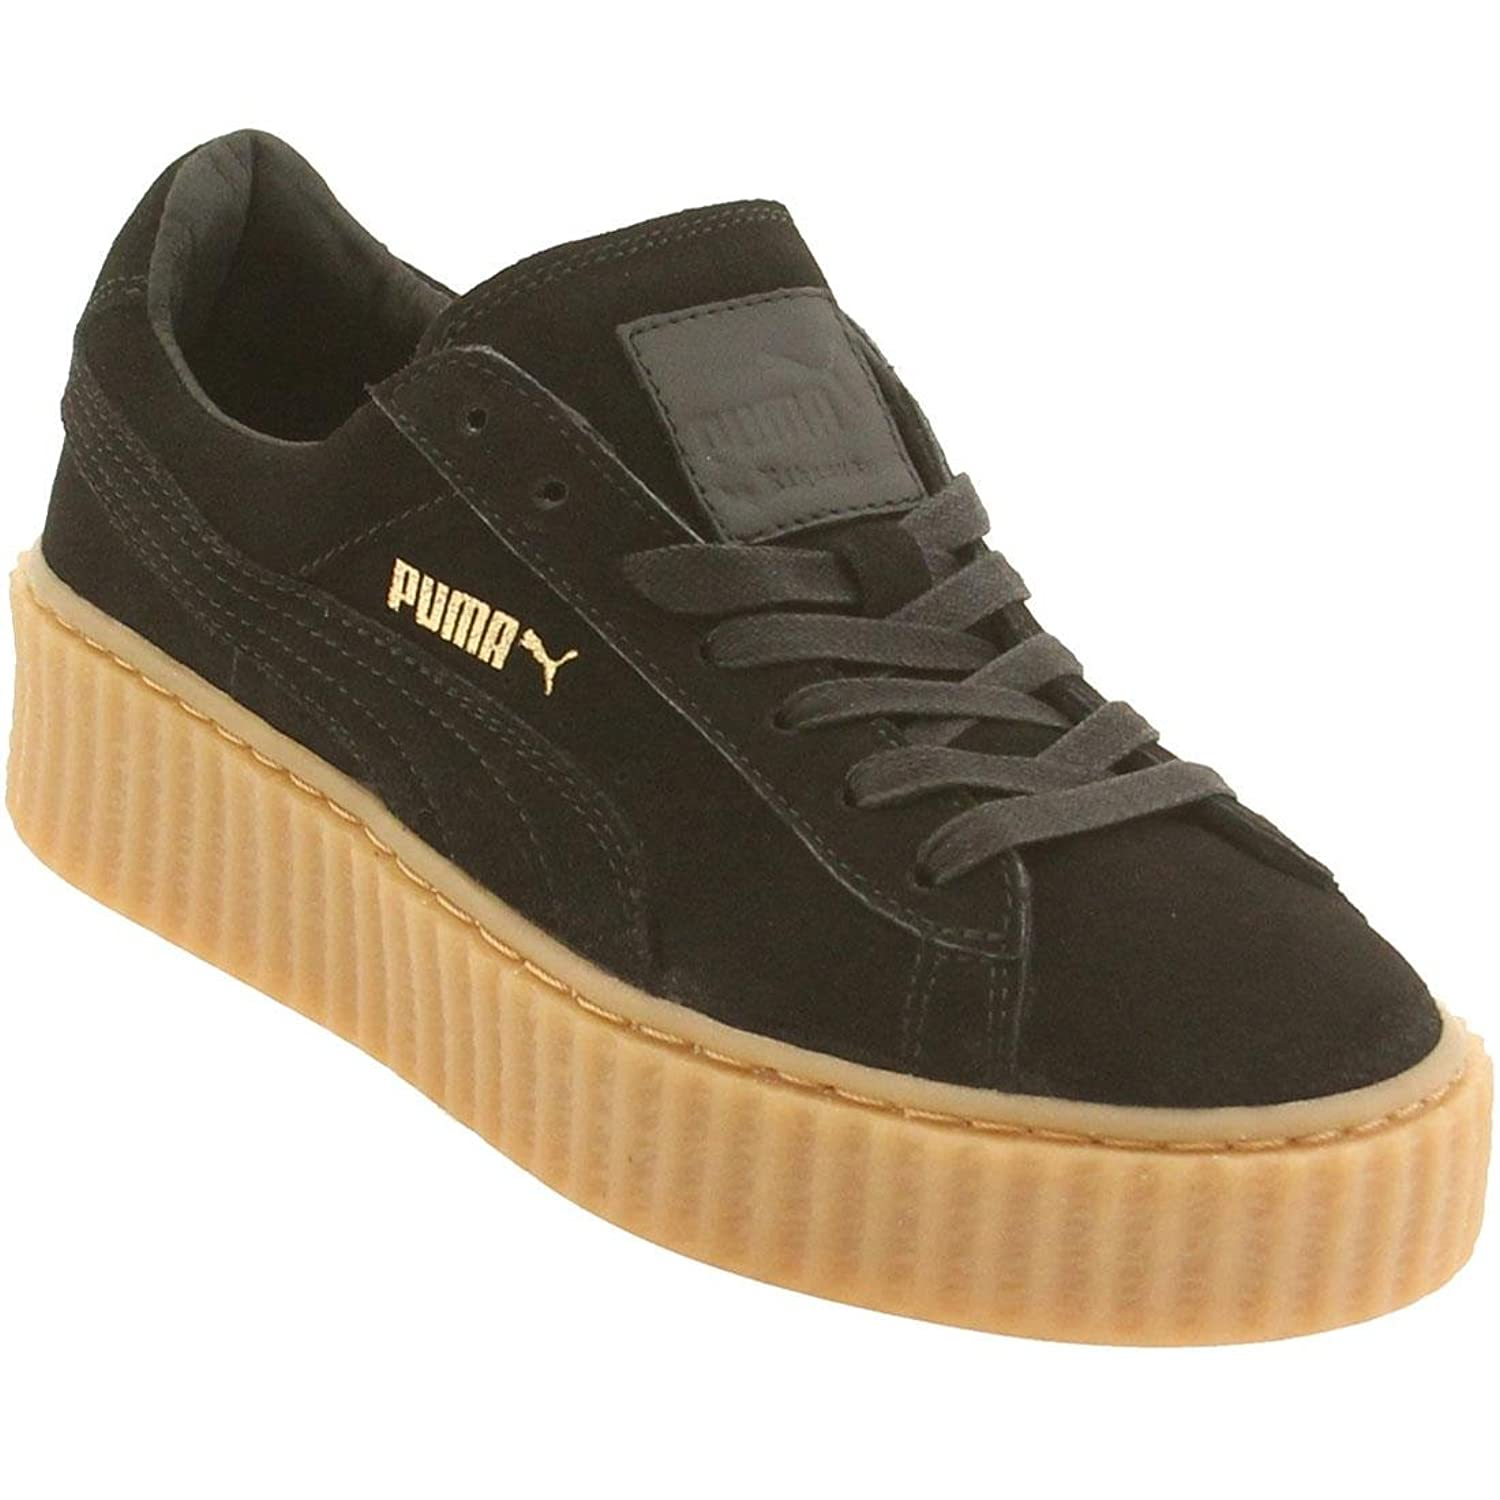 PUMA Womens Fenty by Rihanna Black Suede Creepers 36100502 Sneakers Shoes 8.5